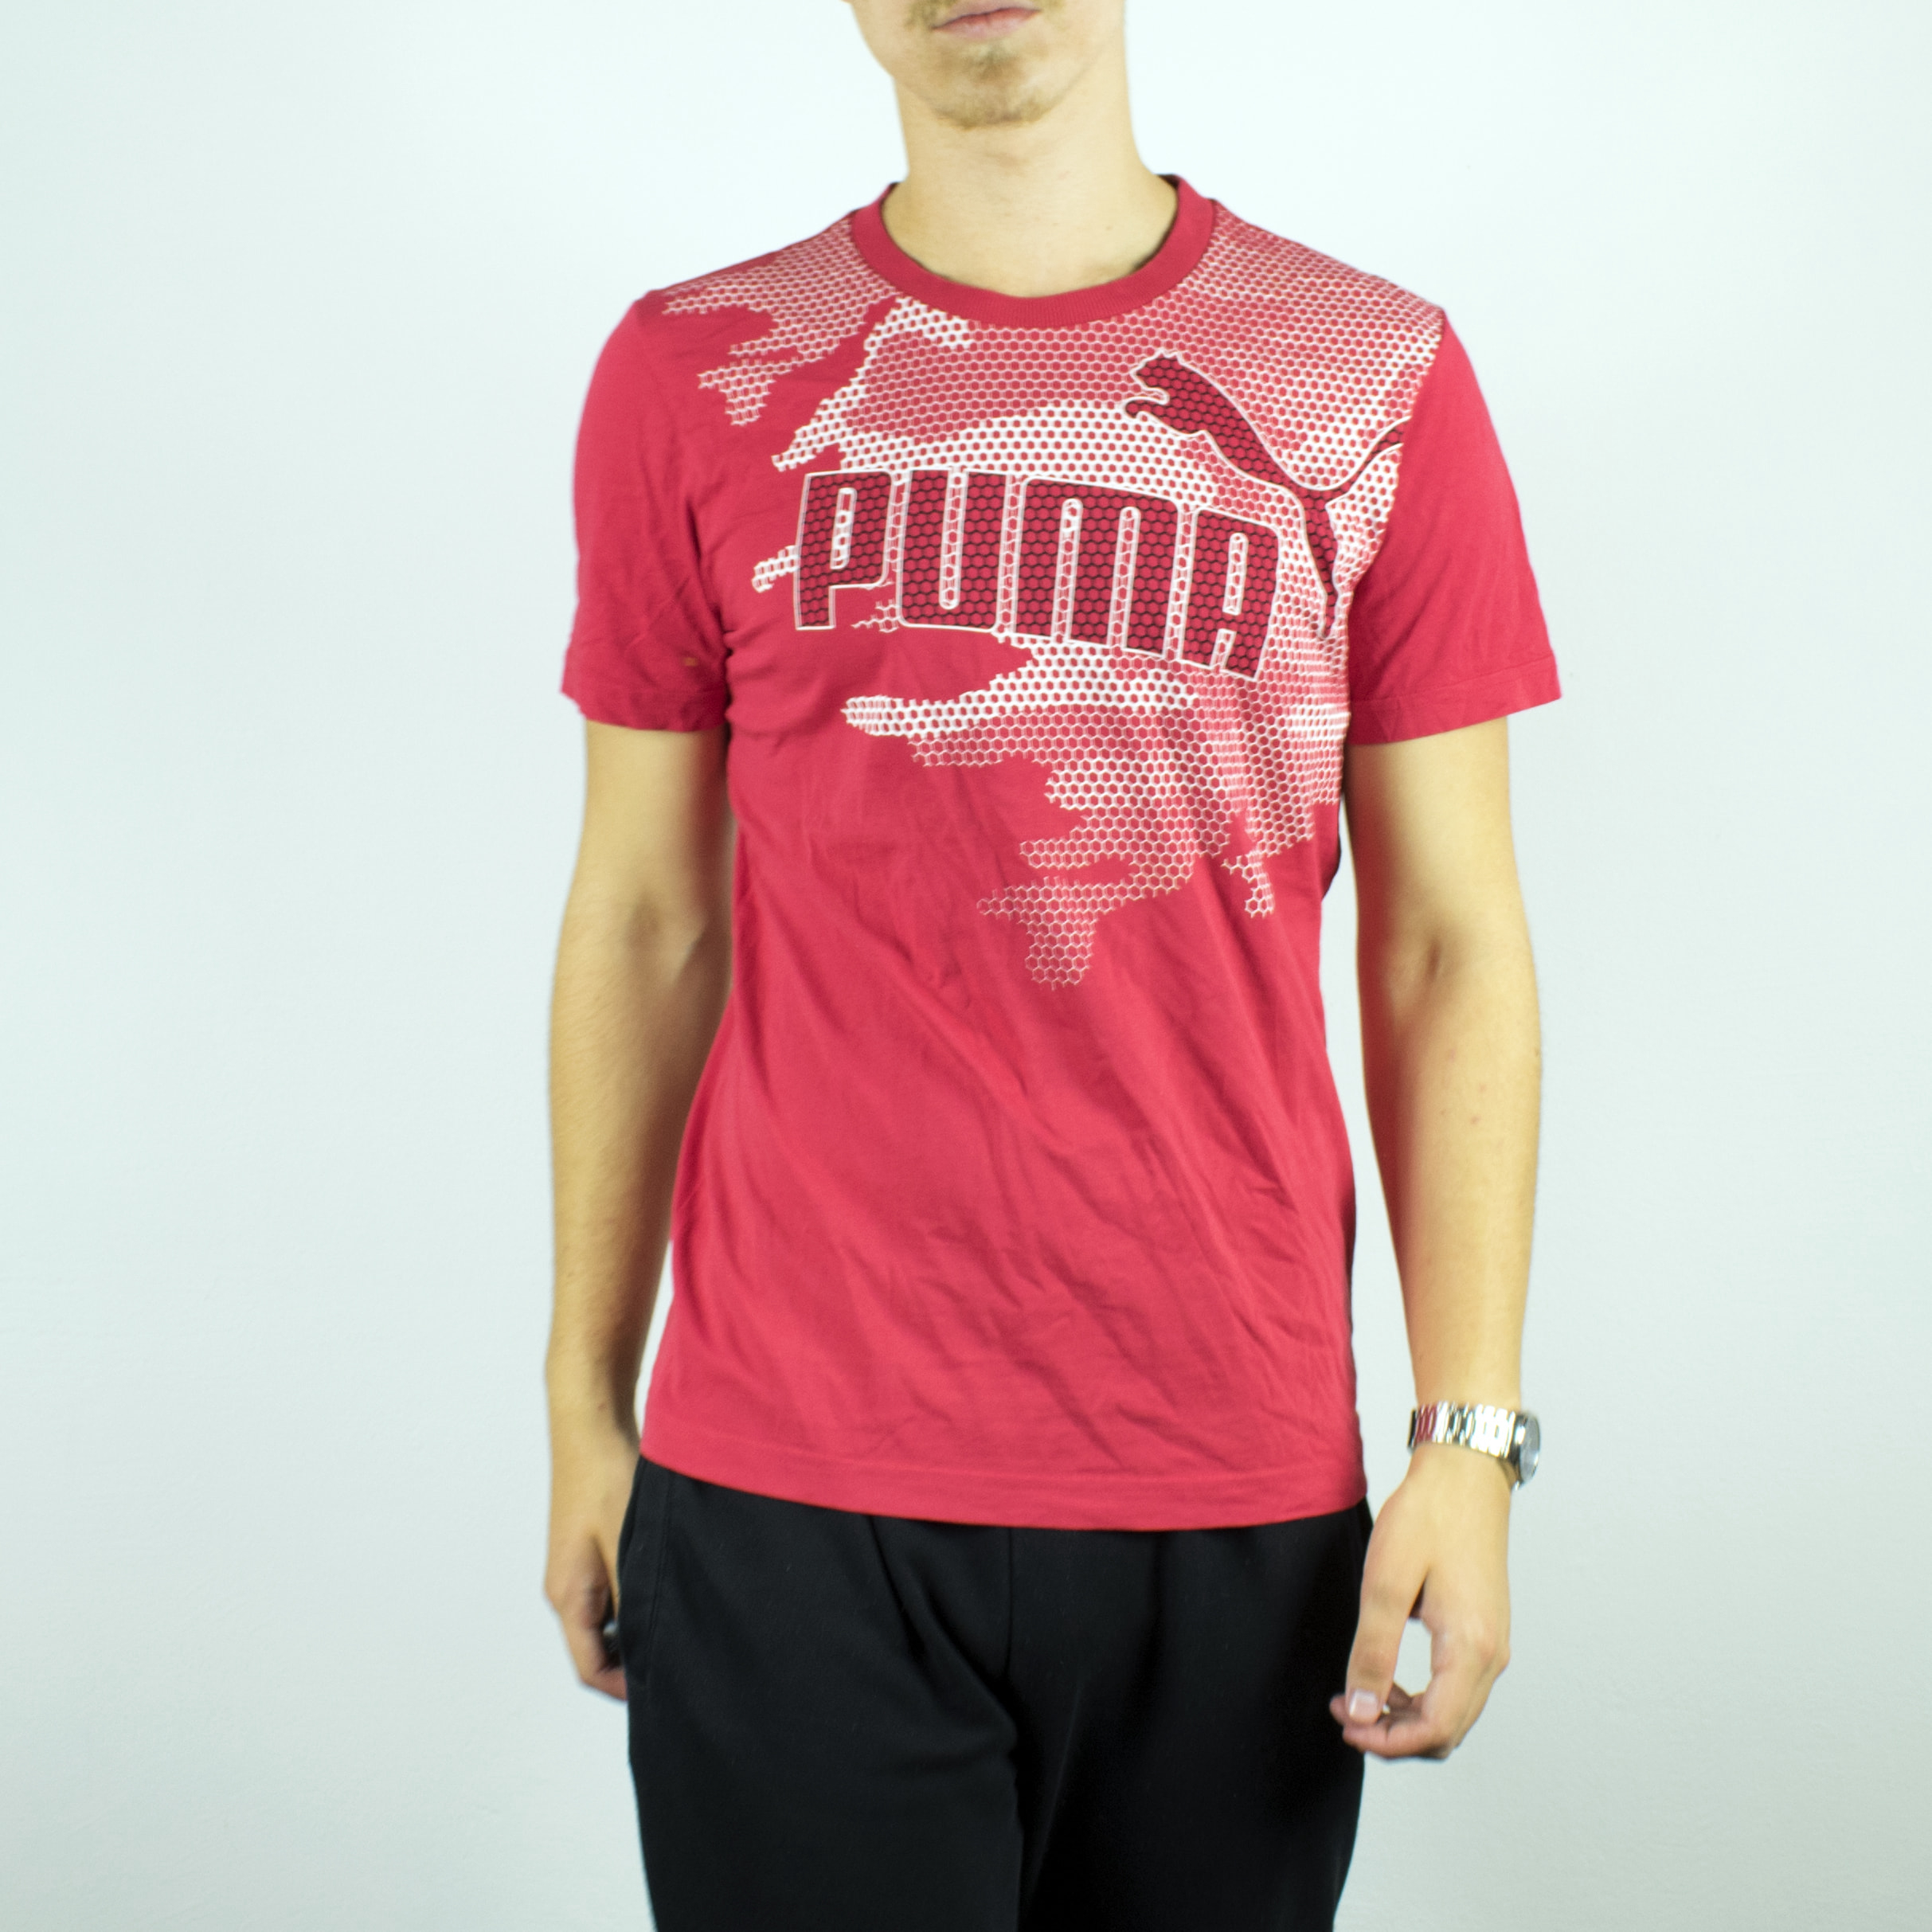 Unisex Puma t-shirt in pink has a big spellout on the front size S/M